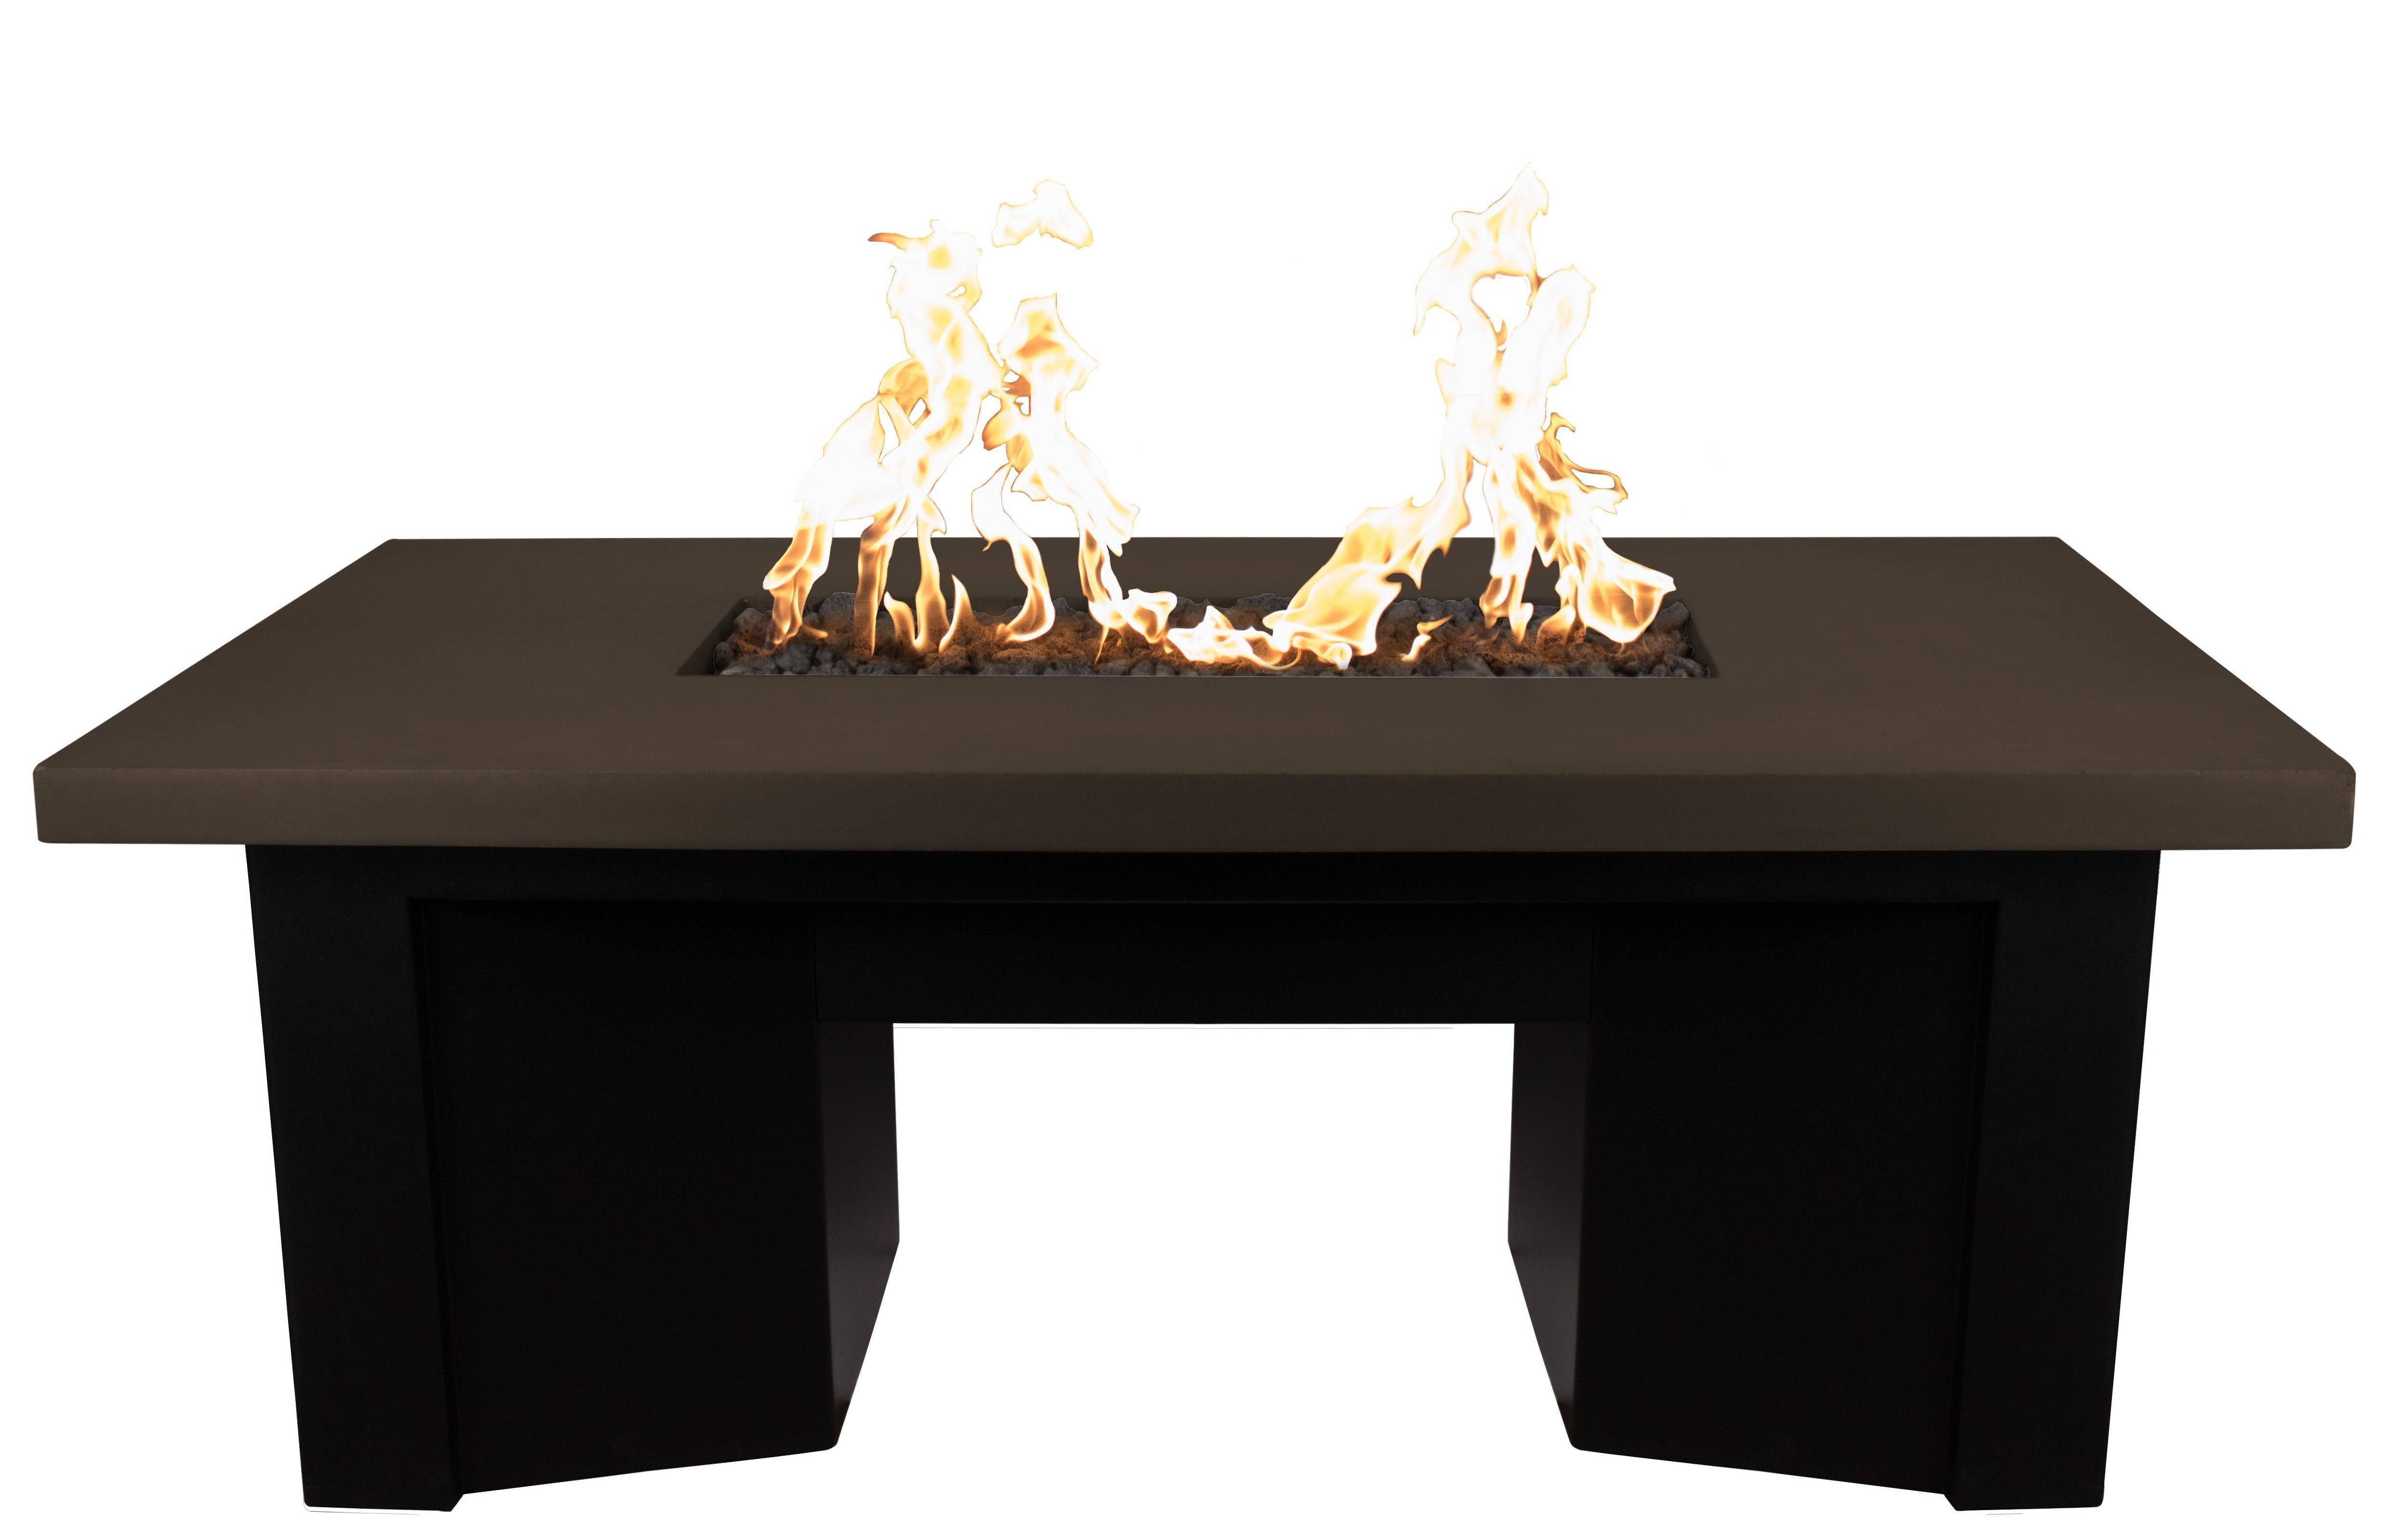 Saleen Concrete Fire Pit Table | Starting at